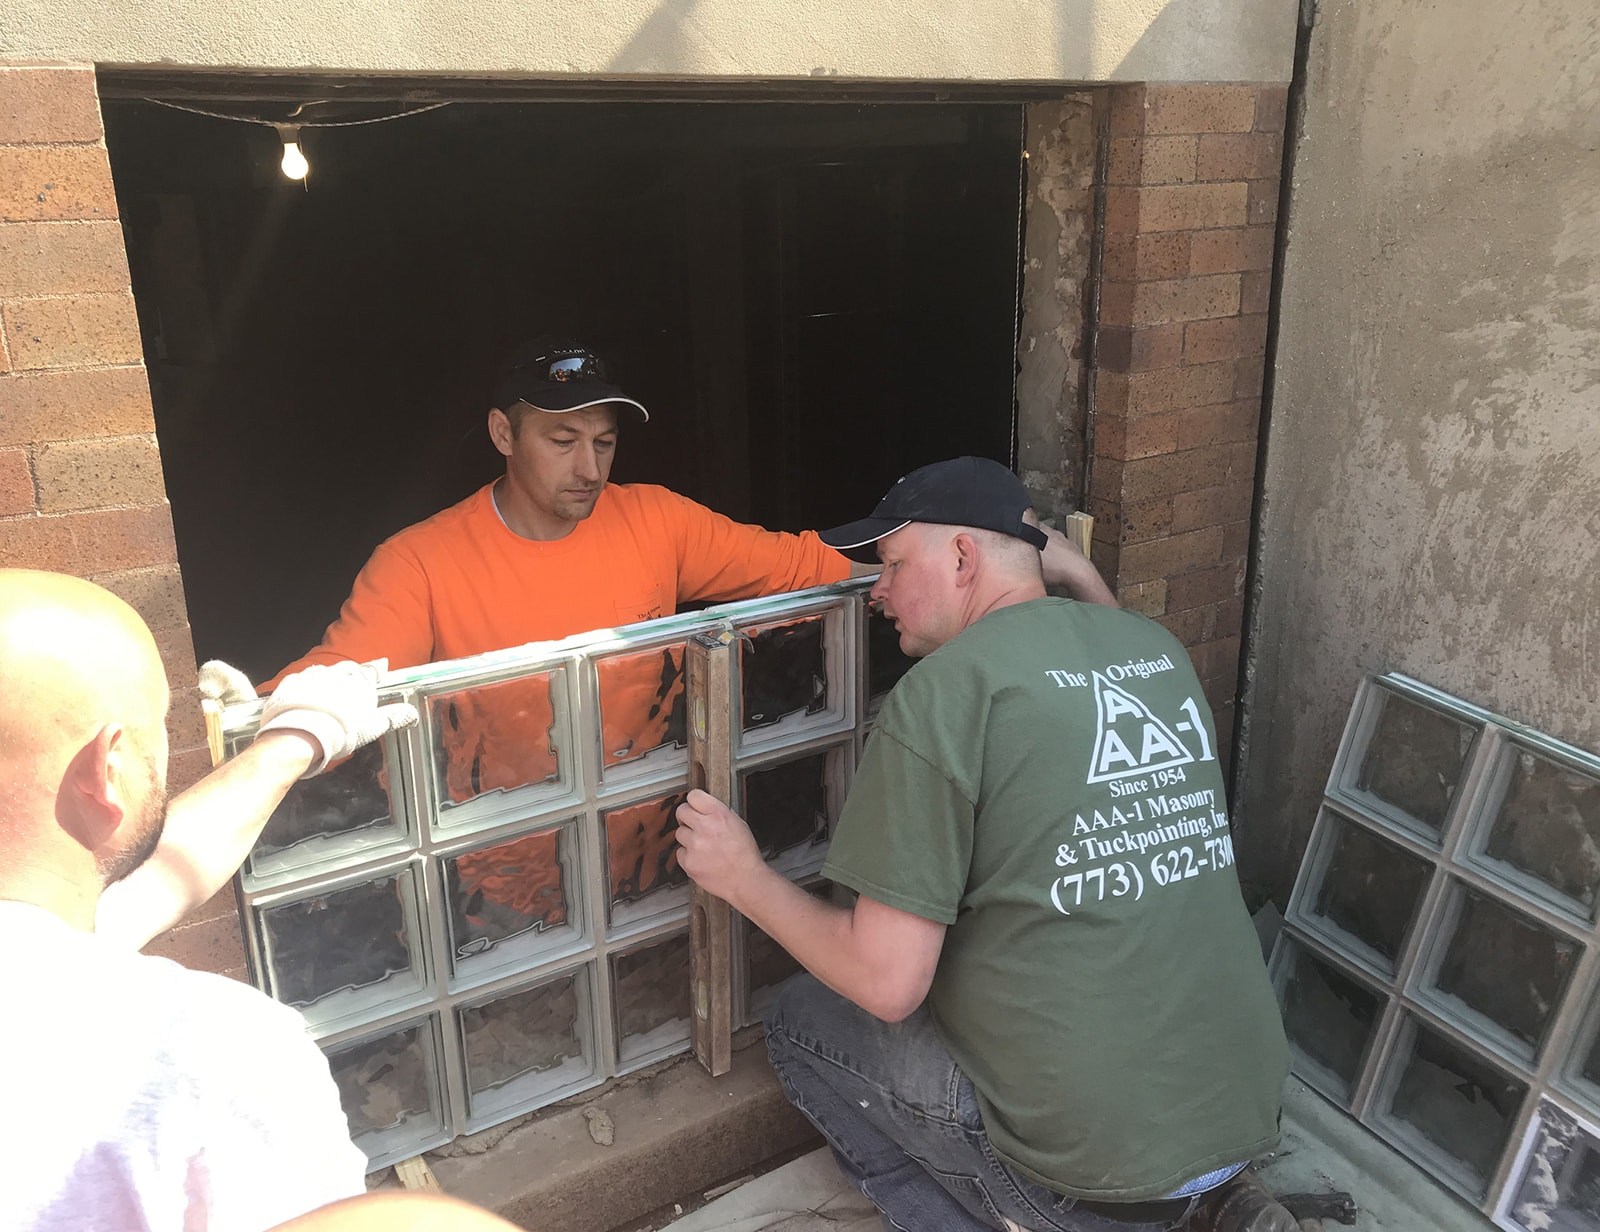 AAA-1 licensed masons installing a wavy-styled glass block window unit in a basement opening